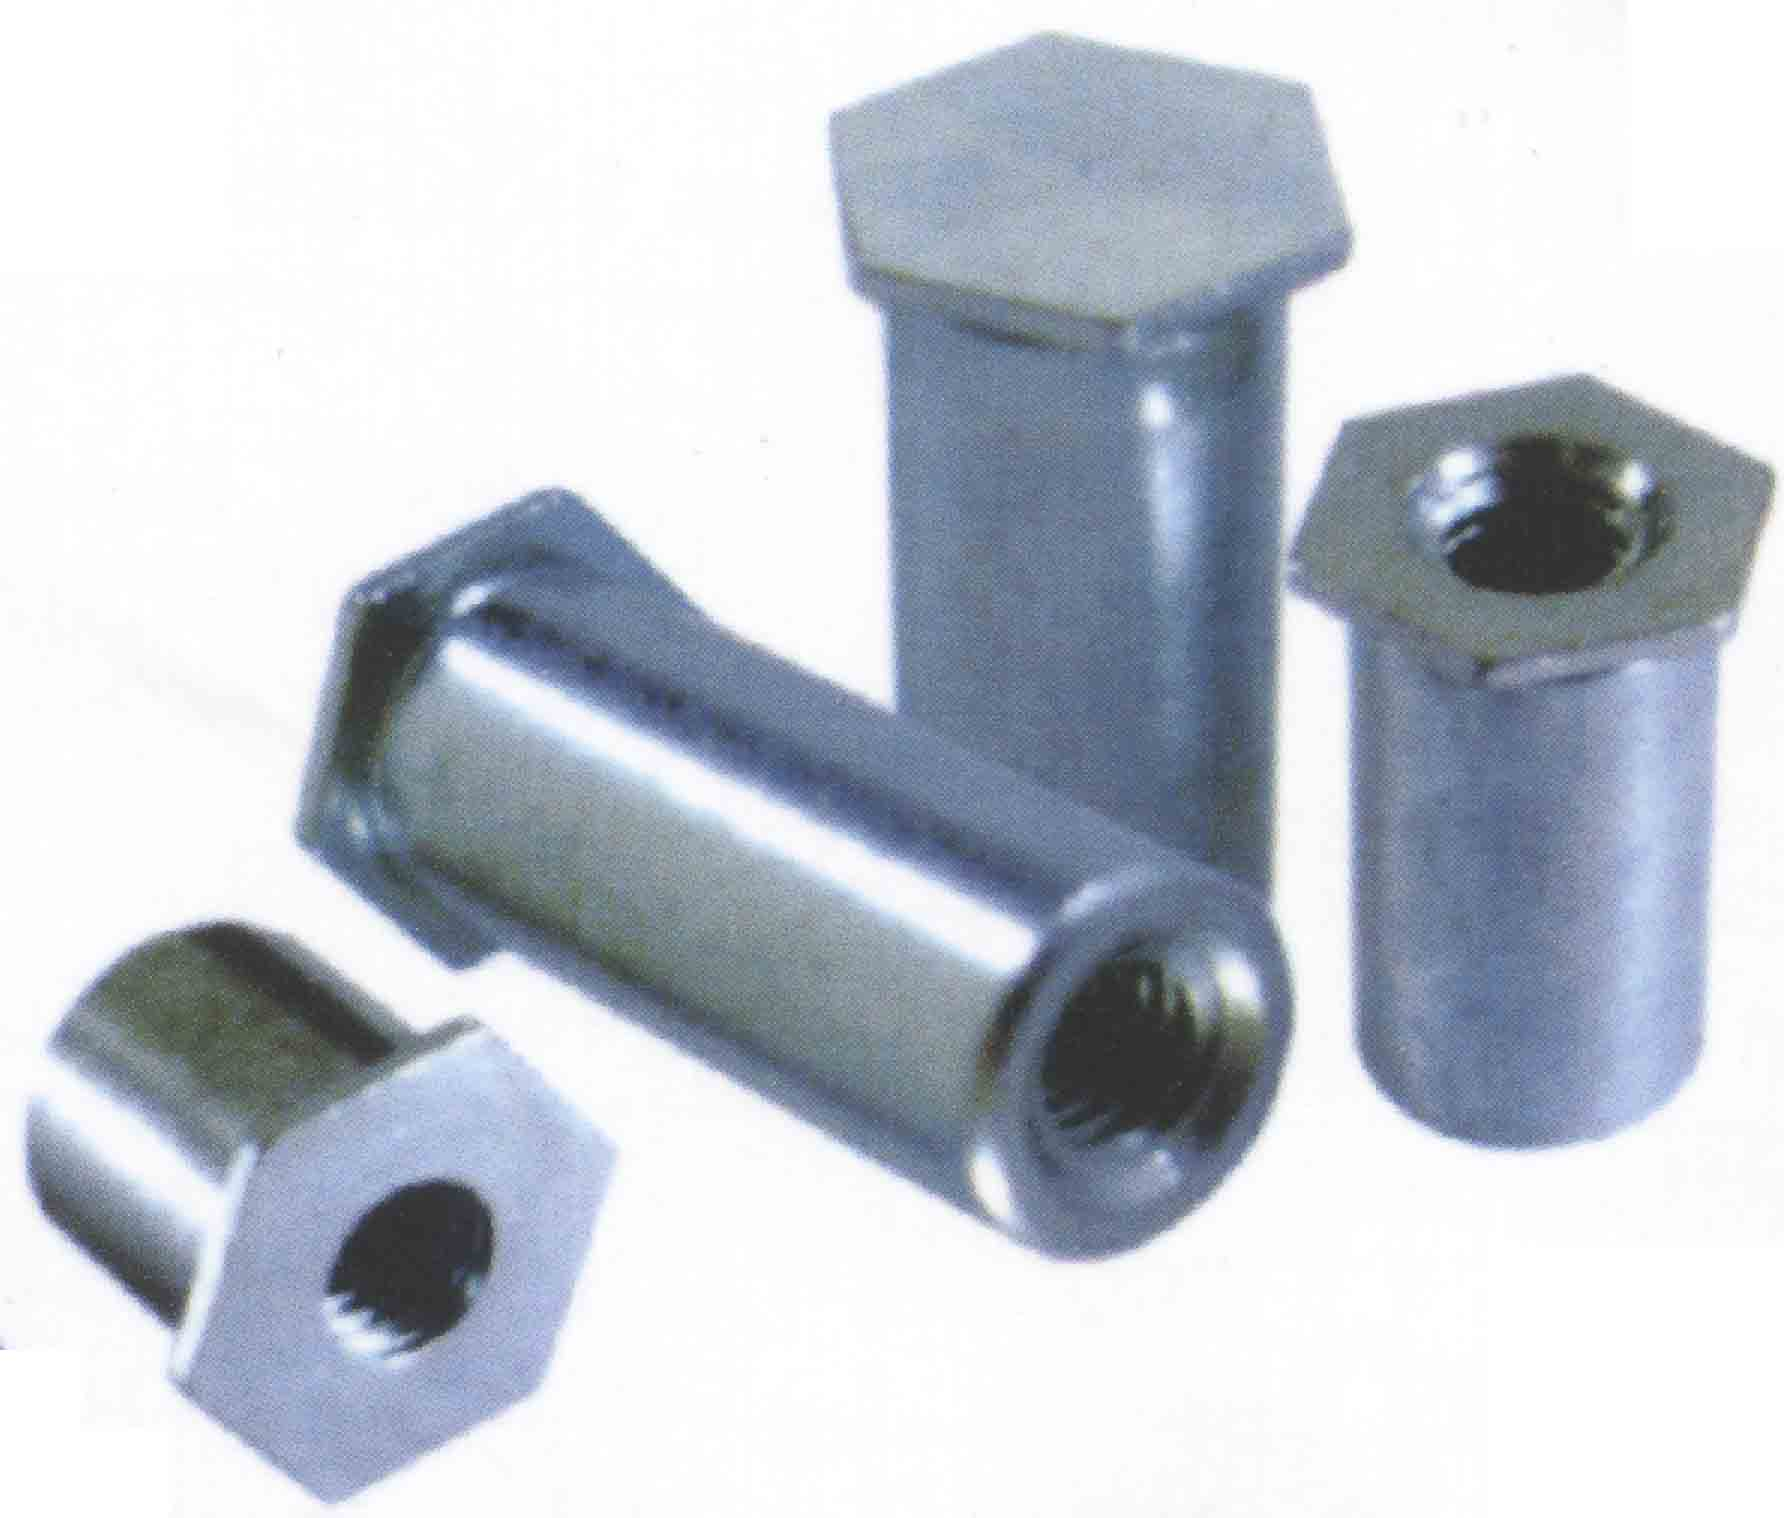 Parts Blind Components Blind